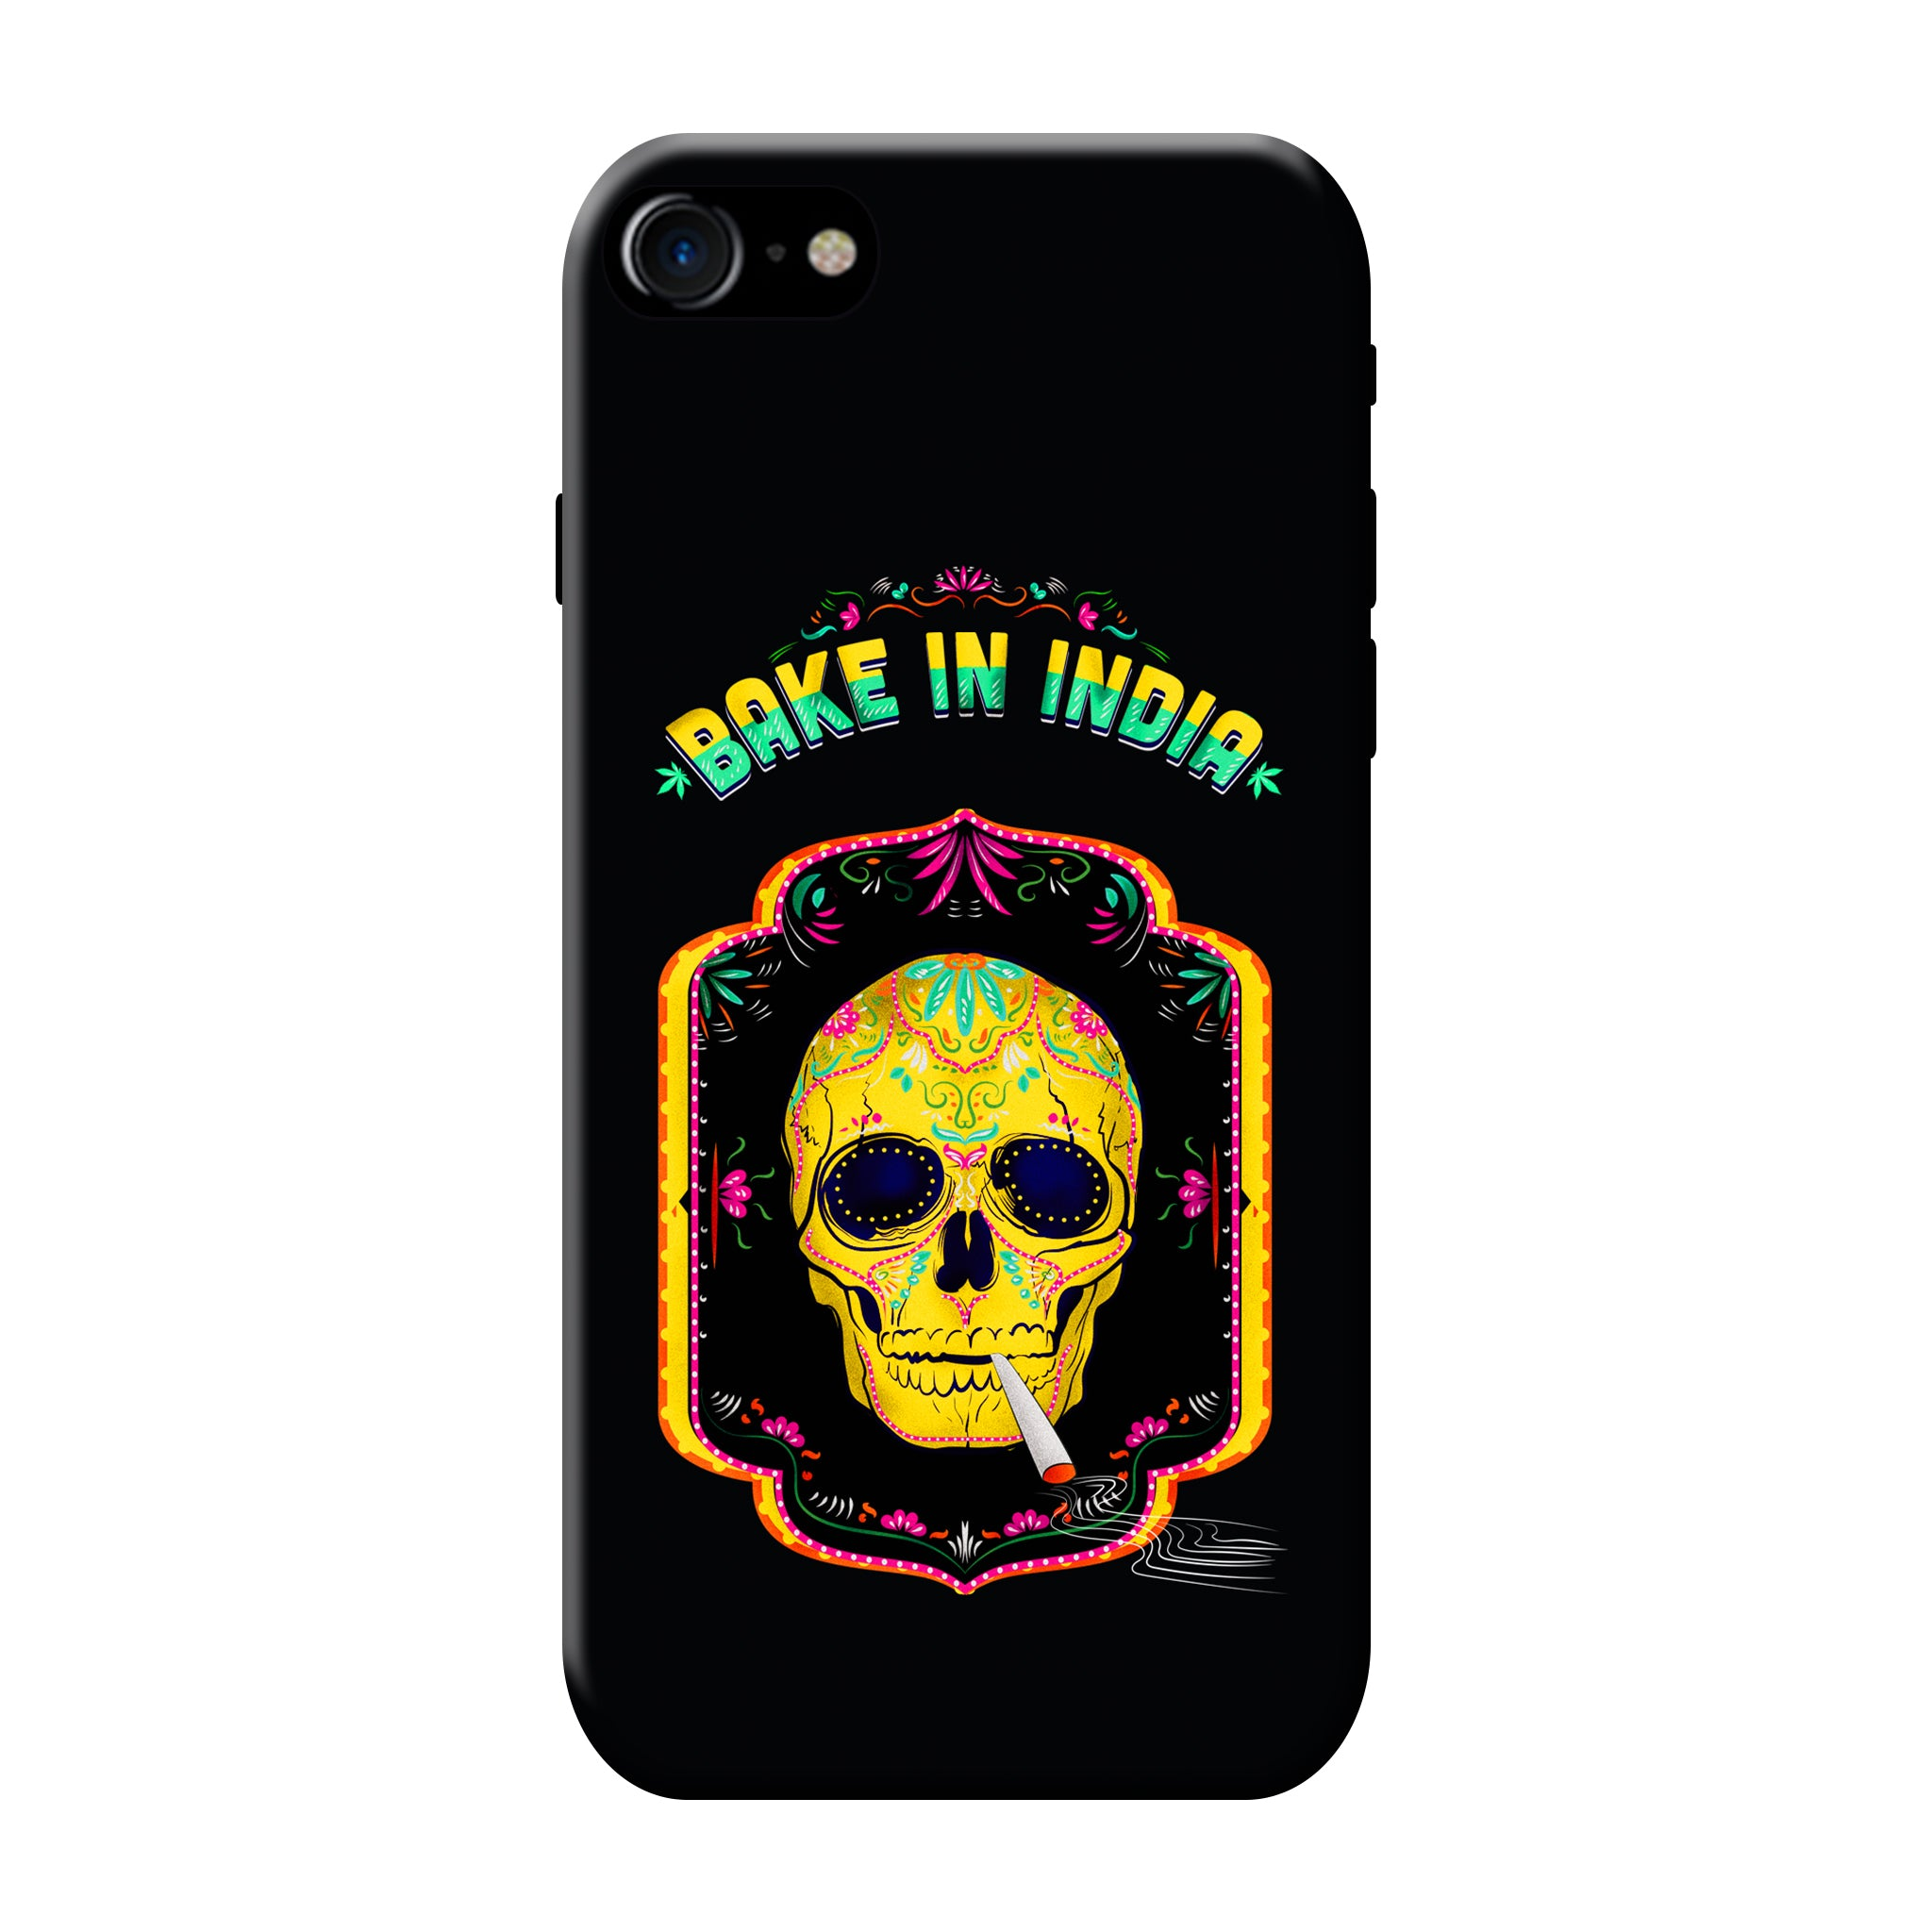 Bake In India Iphone 7 Cover